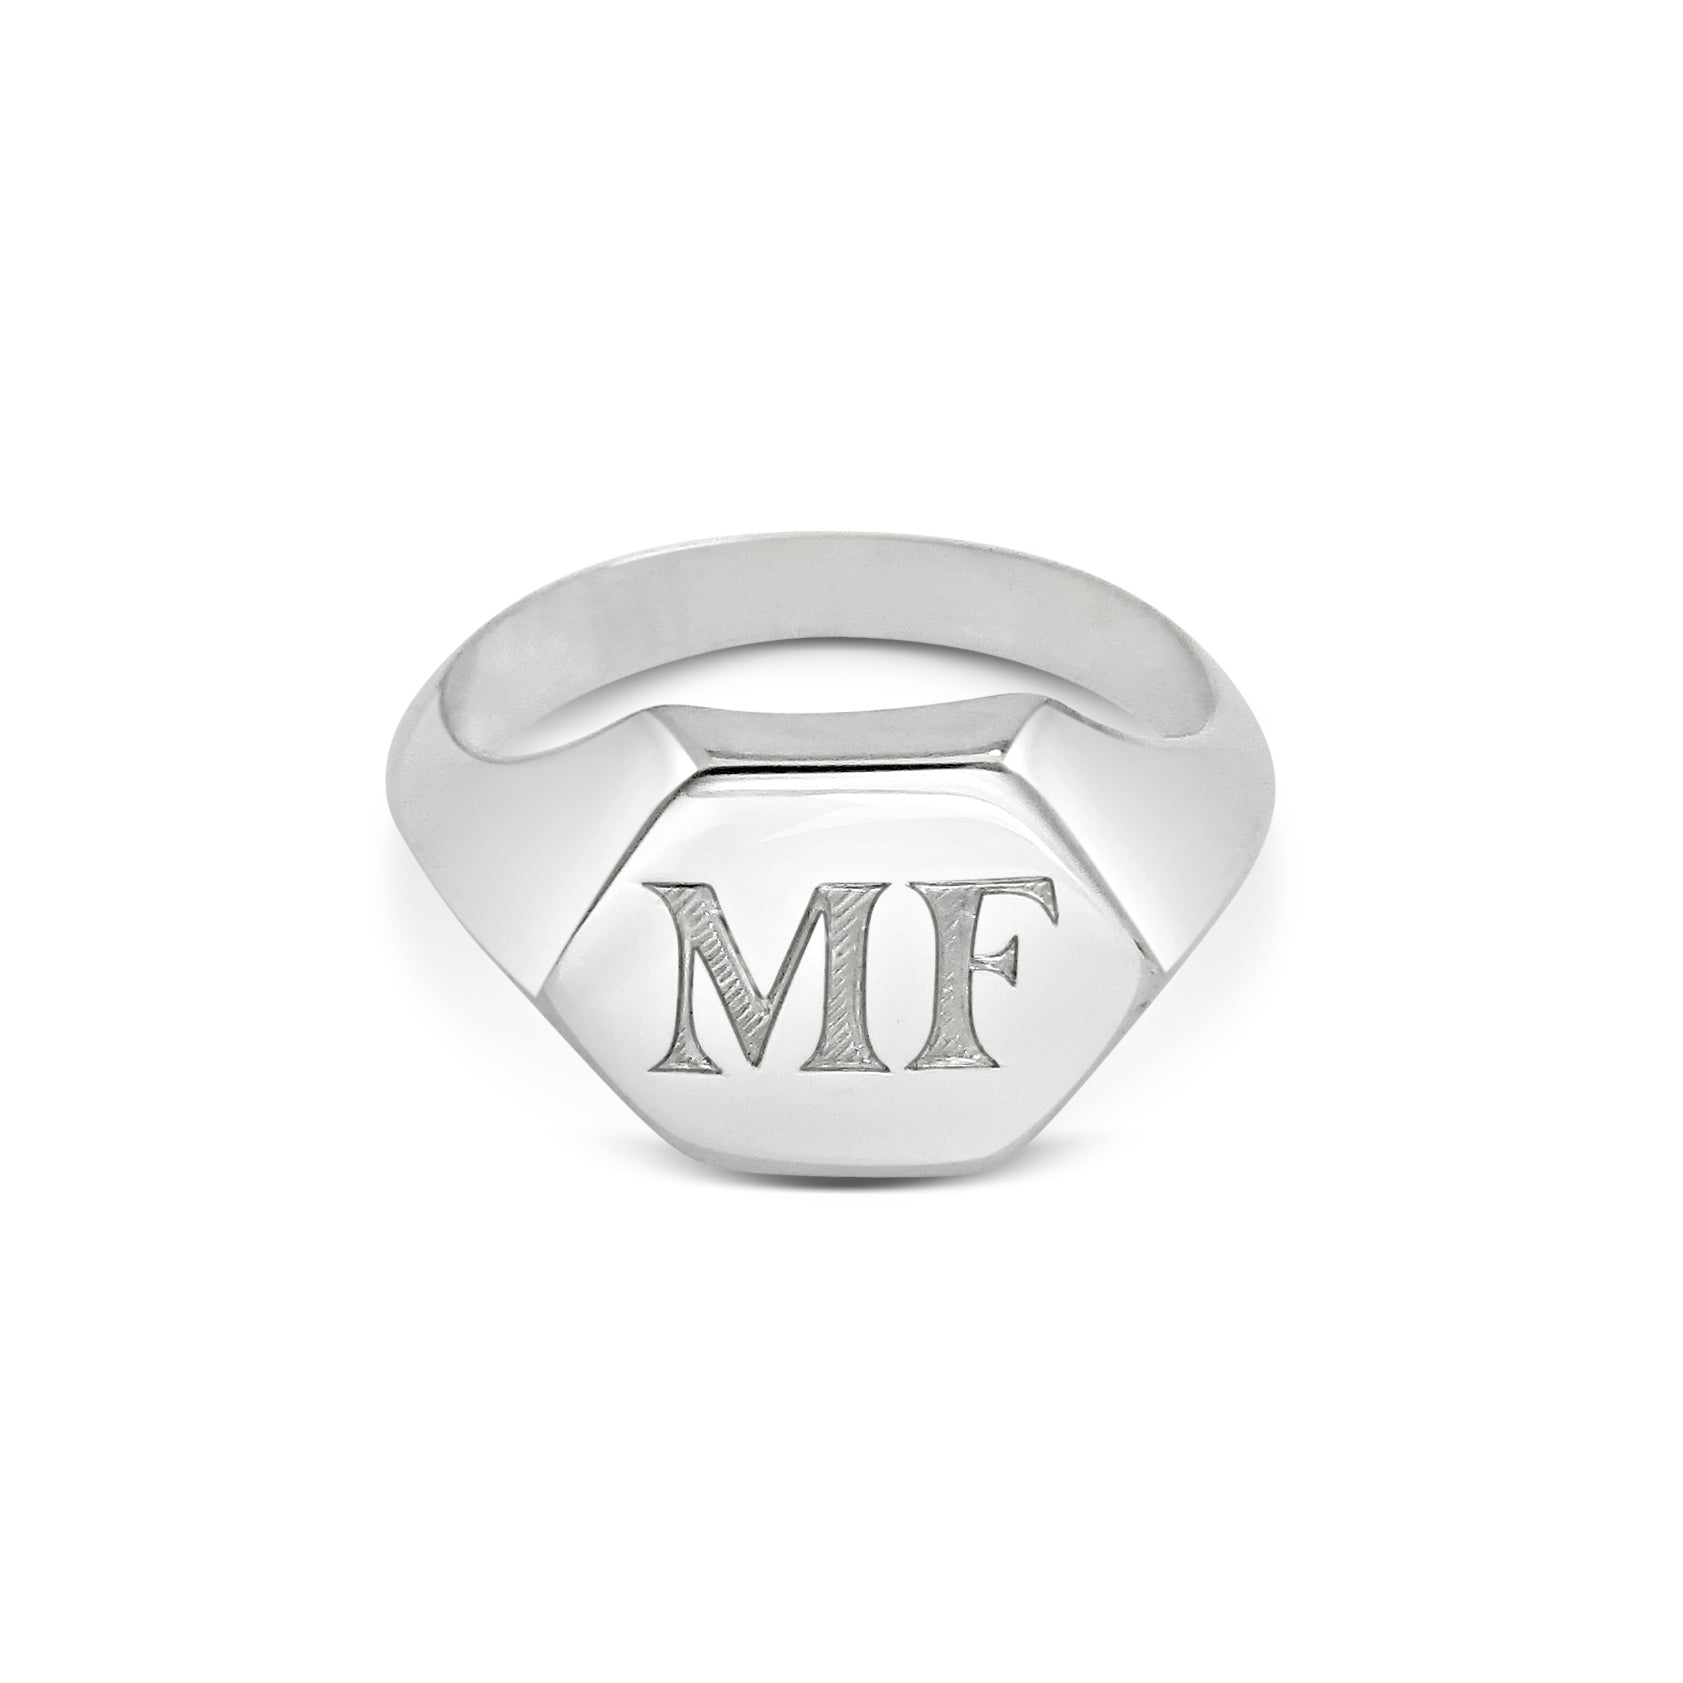 Hand Engraved Hexagonal Male Signet Ring 18ct White Gold